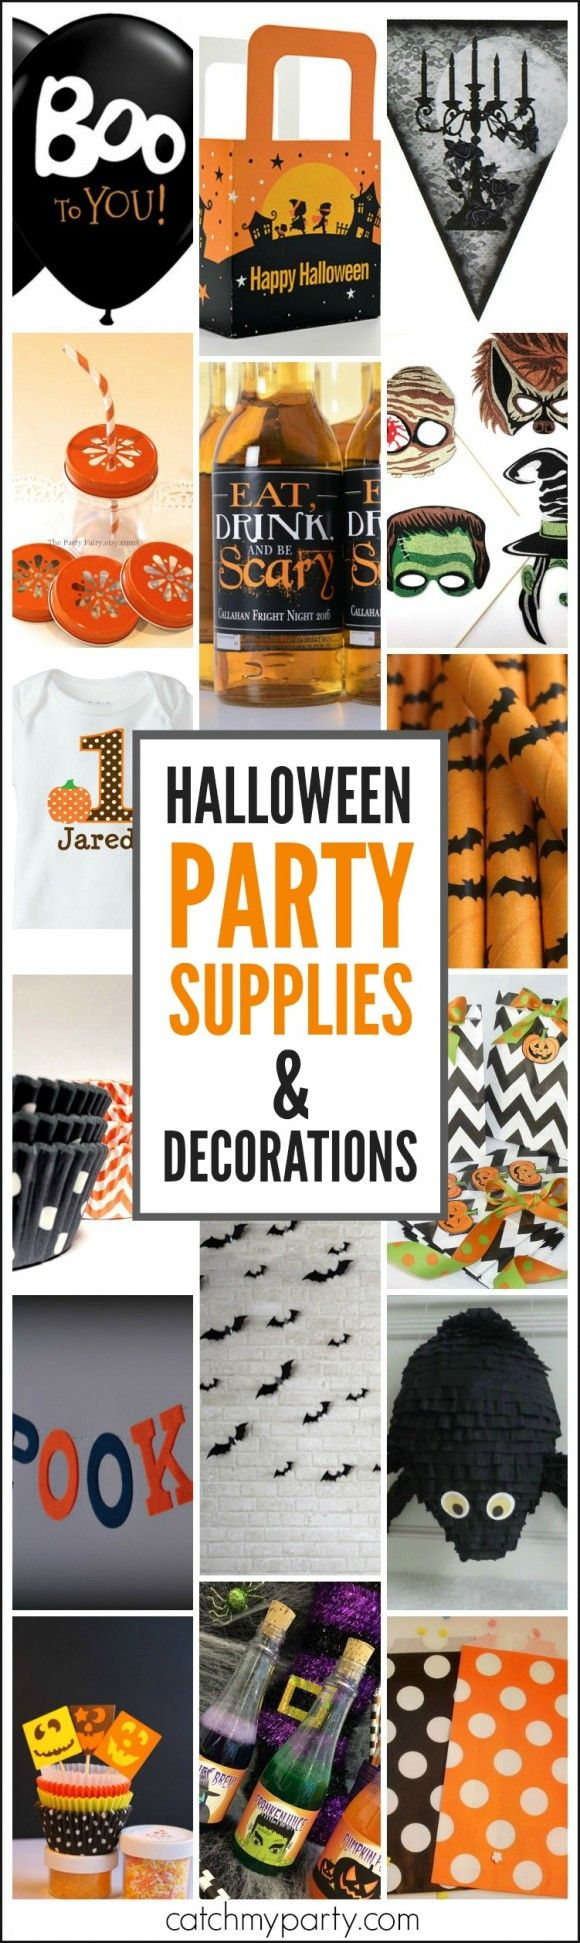 Halloween Party Supplies and Decorations Roundup from small shop owners! | CatchMyParty.com